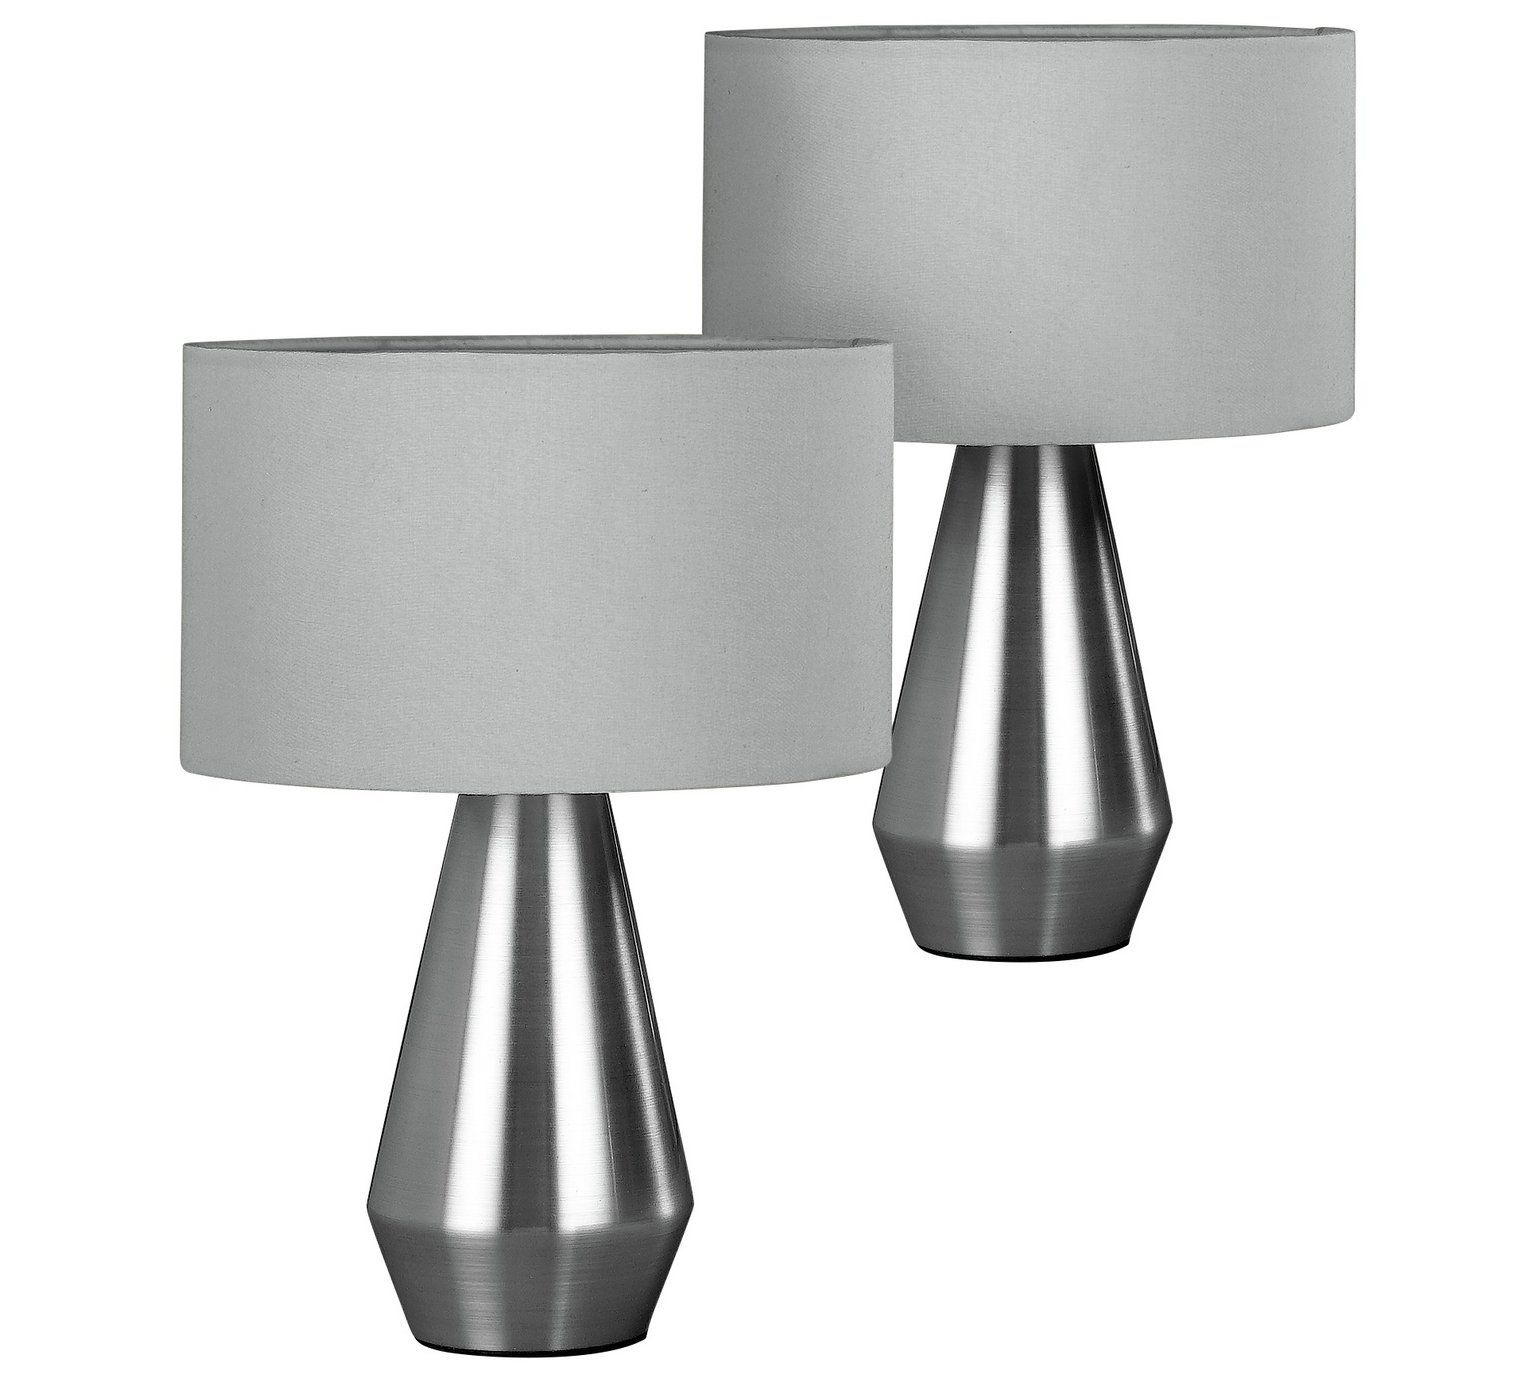 Buy Habitat Maya Pair Of Touch Table Lamps Grey Table Lamps Argos Touch Table Lamps Bedside Lamps Grey Touch Lamps Bedside